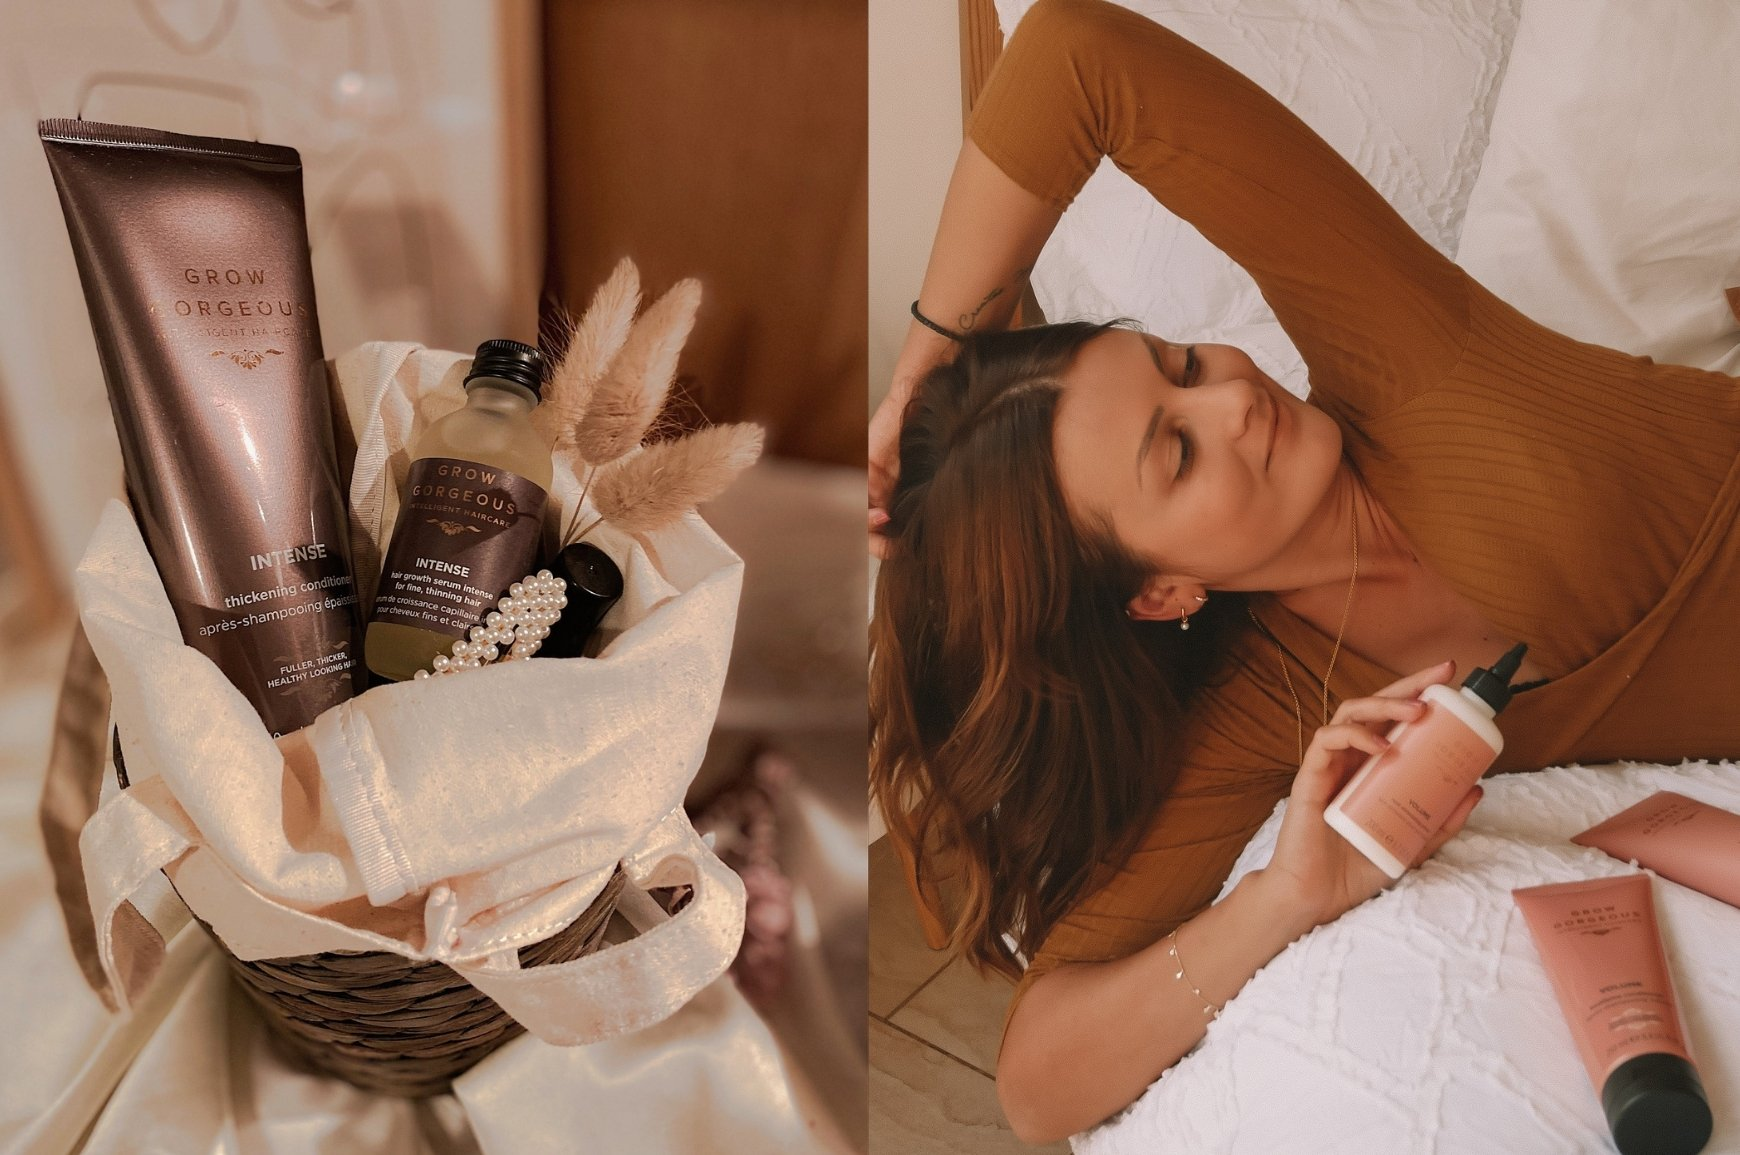 A wicker basket with cream lining containing Grow Gorgeous Intense Thickening Conditioner and Intense Hair Growth Serum. Girl relaxing on a bed with white sheets holding Grow Gorgeous Volume Root Stimulating Primer.